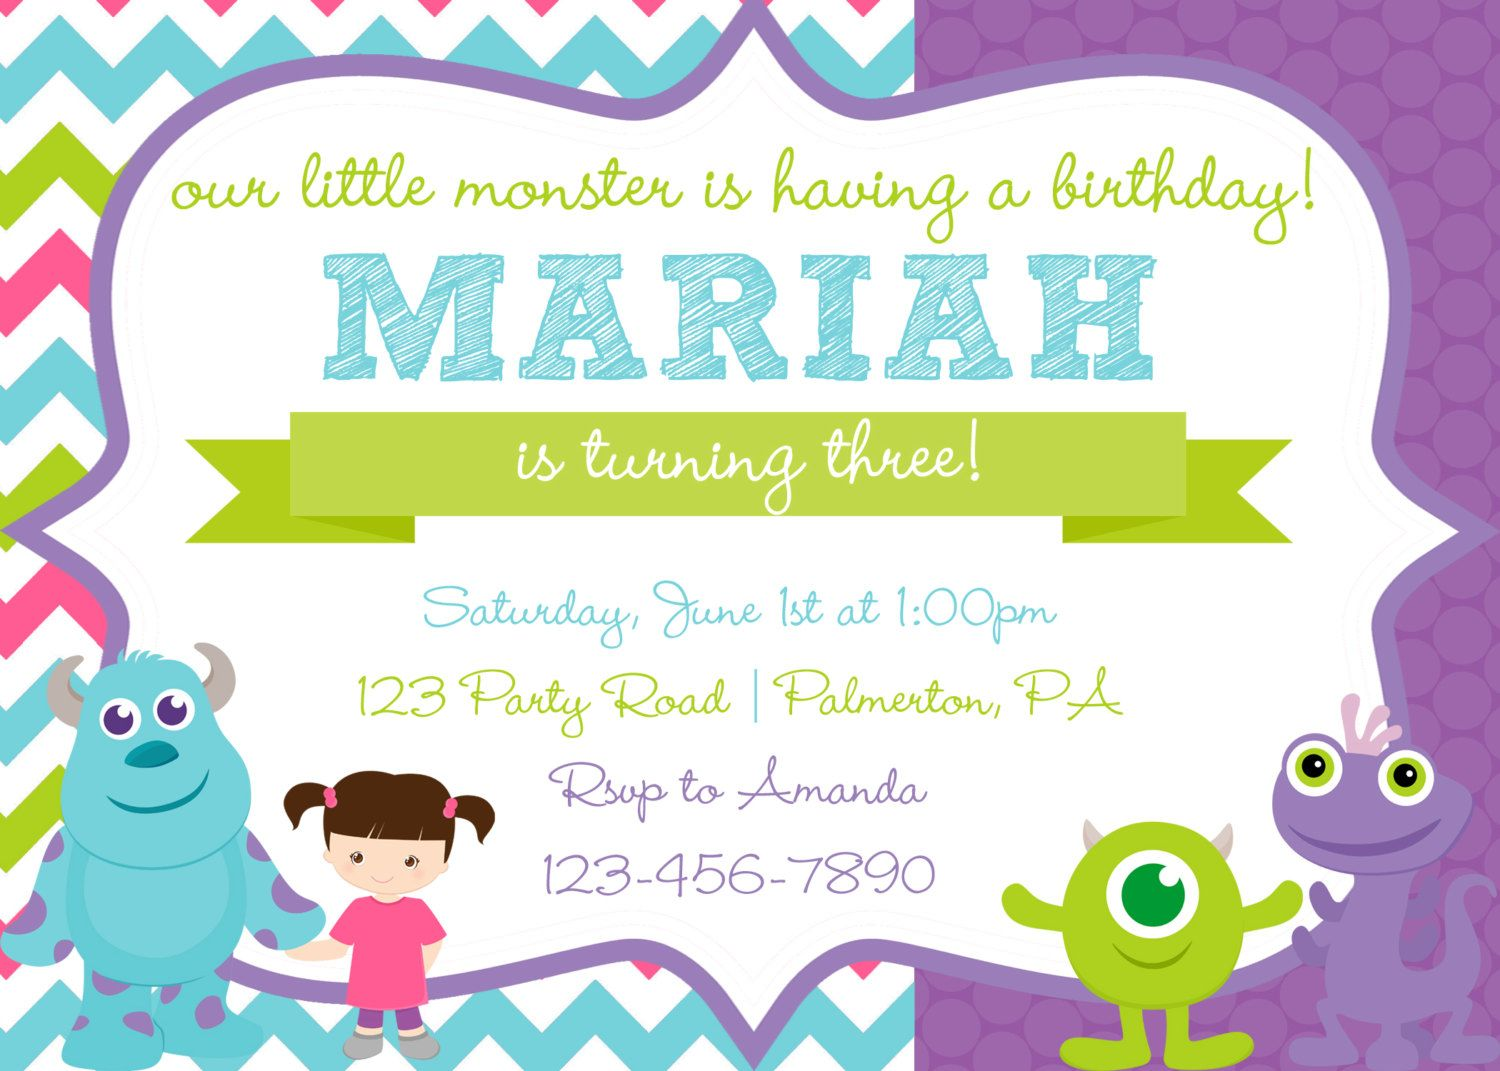 Monsters Inc Birthday Invitation by PrintedPartyBoutique on Etsy ...